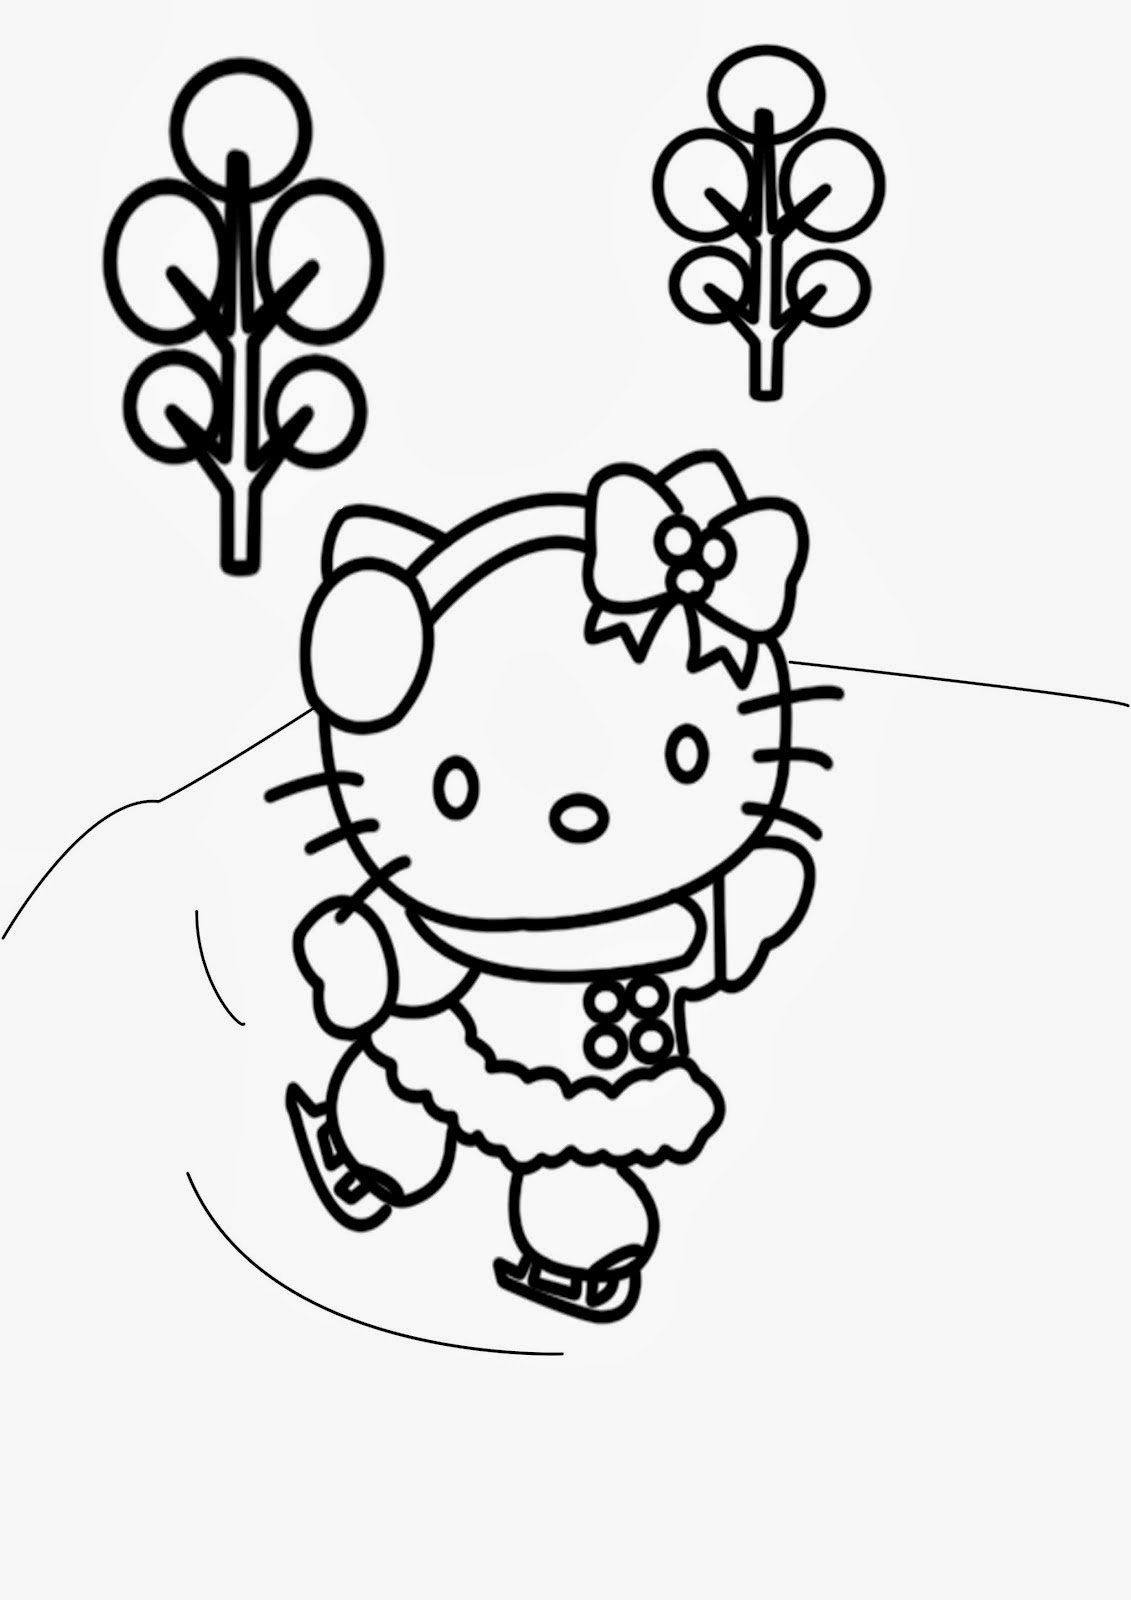 doc mcstuffins logo coloring pages - photo#28